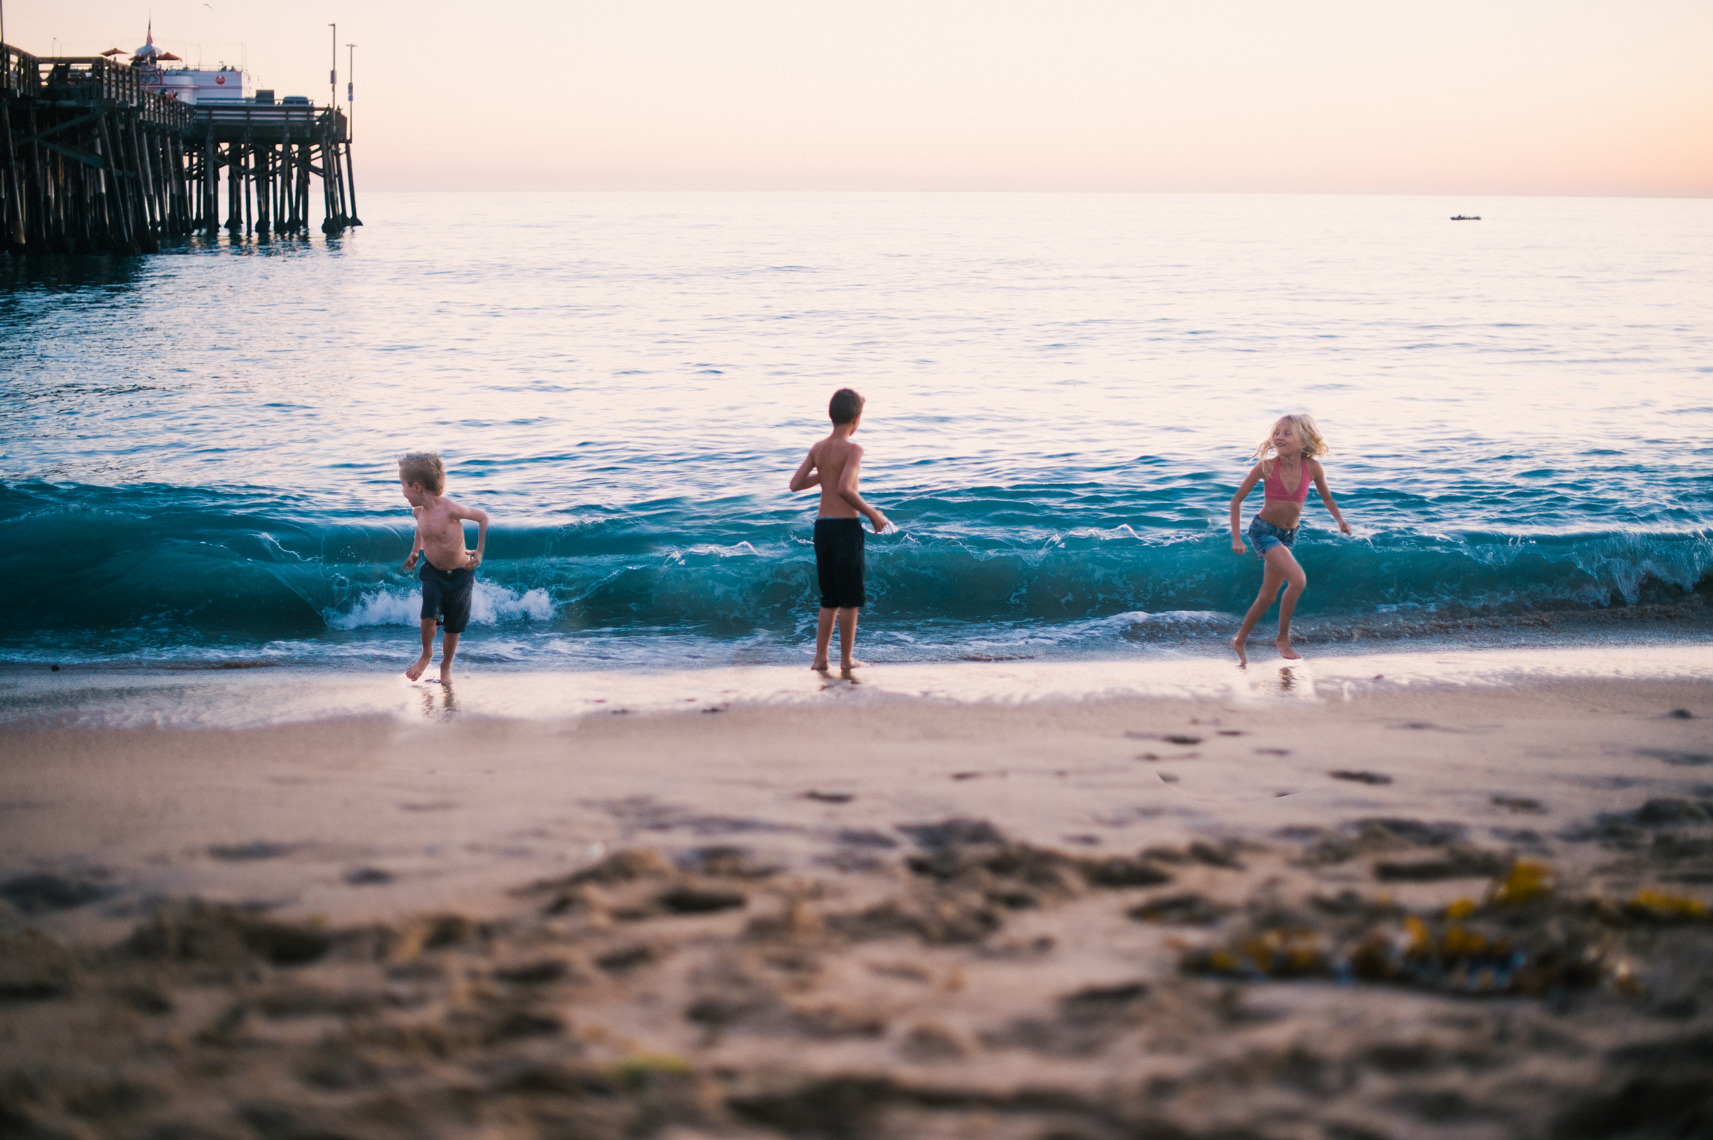 KKRiddle-Children photography in SoCal